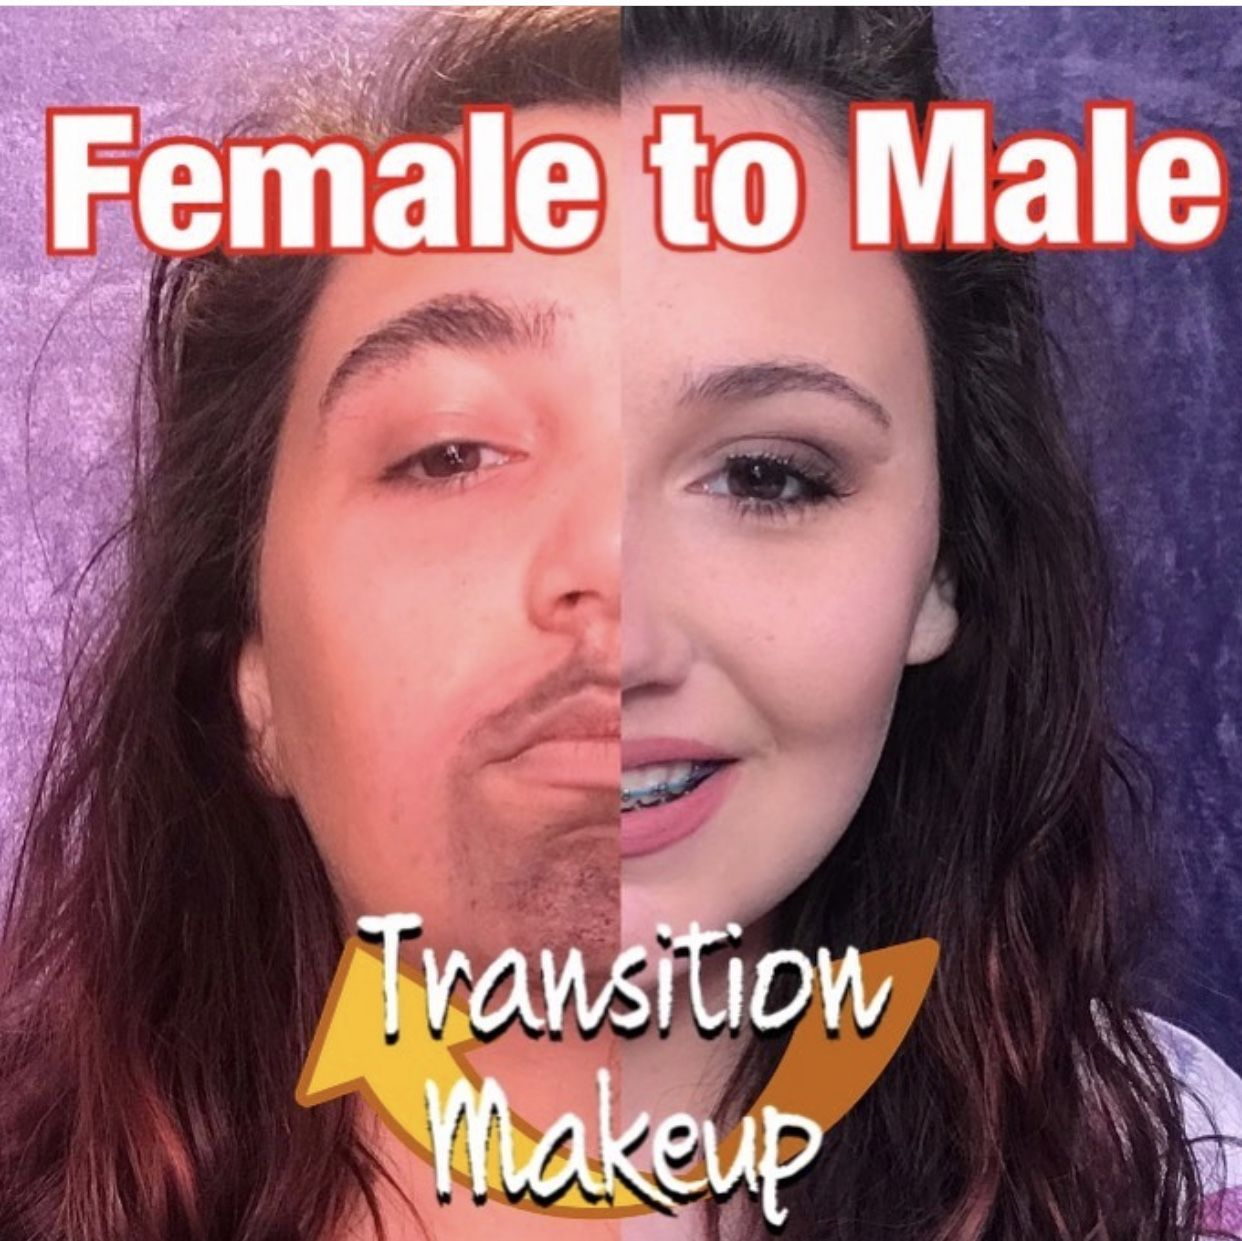 Ftm Makeup Transition In 2020 Makeup Makeup Artist Ftm